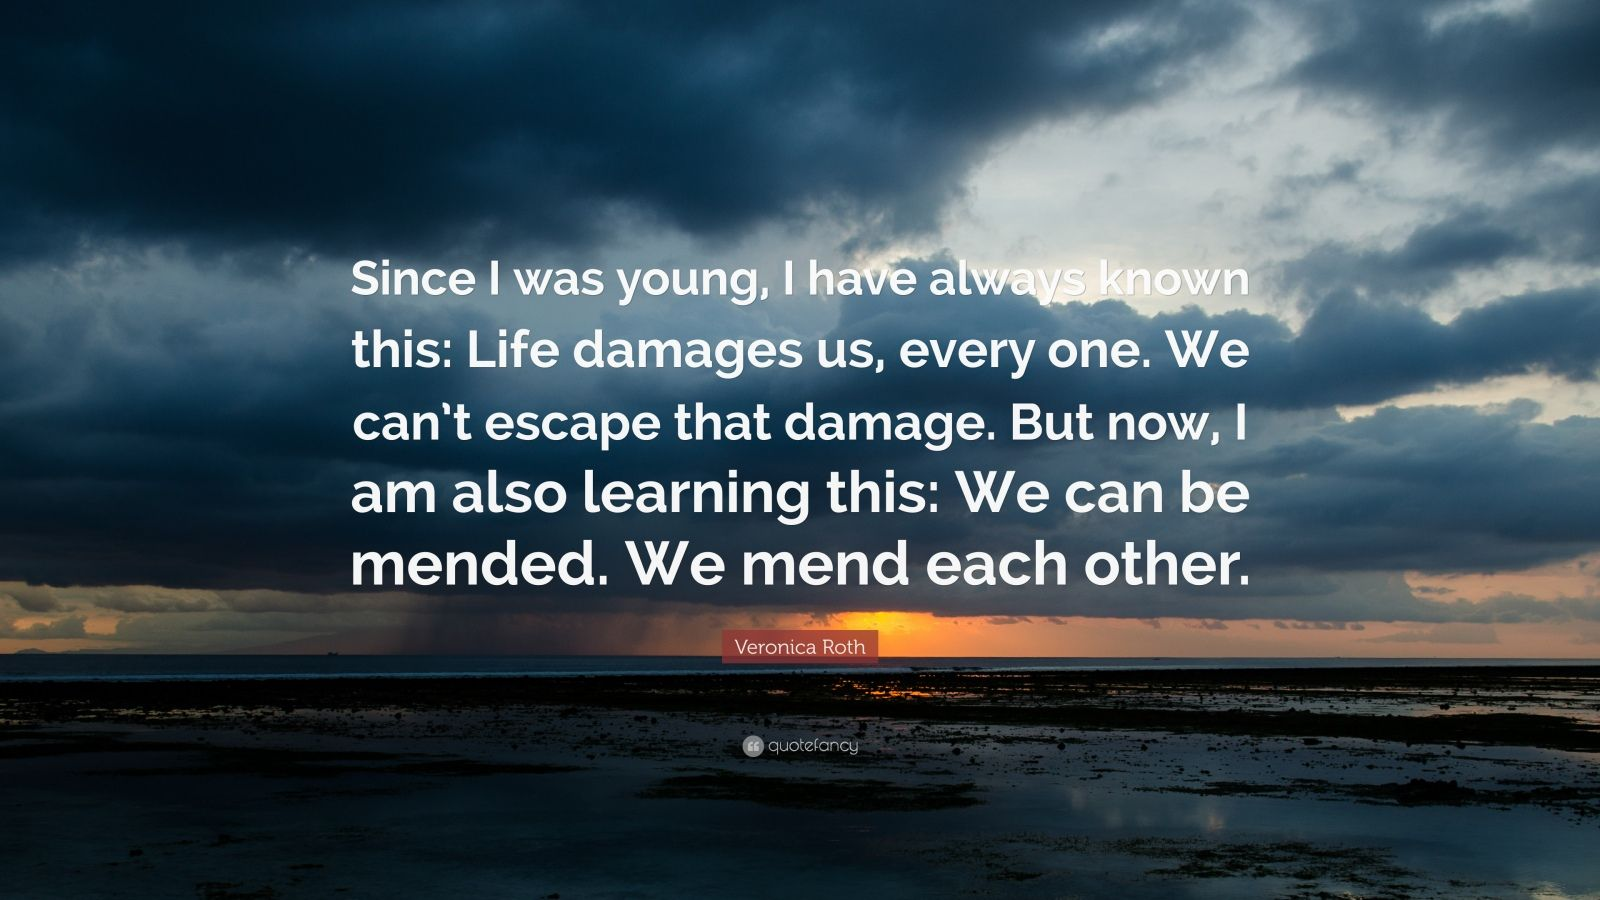 """Veronica Roth Quote: """"Since I was young, I have always known this: Life damages us, every one. We can't escape that damage. But now, I am also learning this: We can be mended. We mend each other."""""""